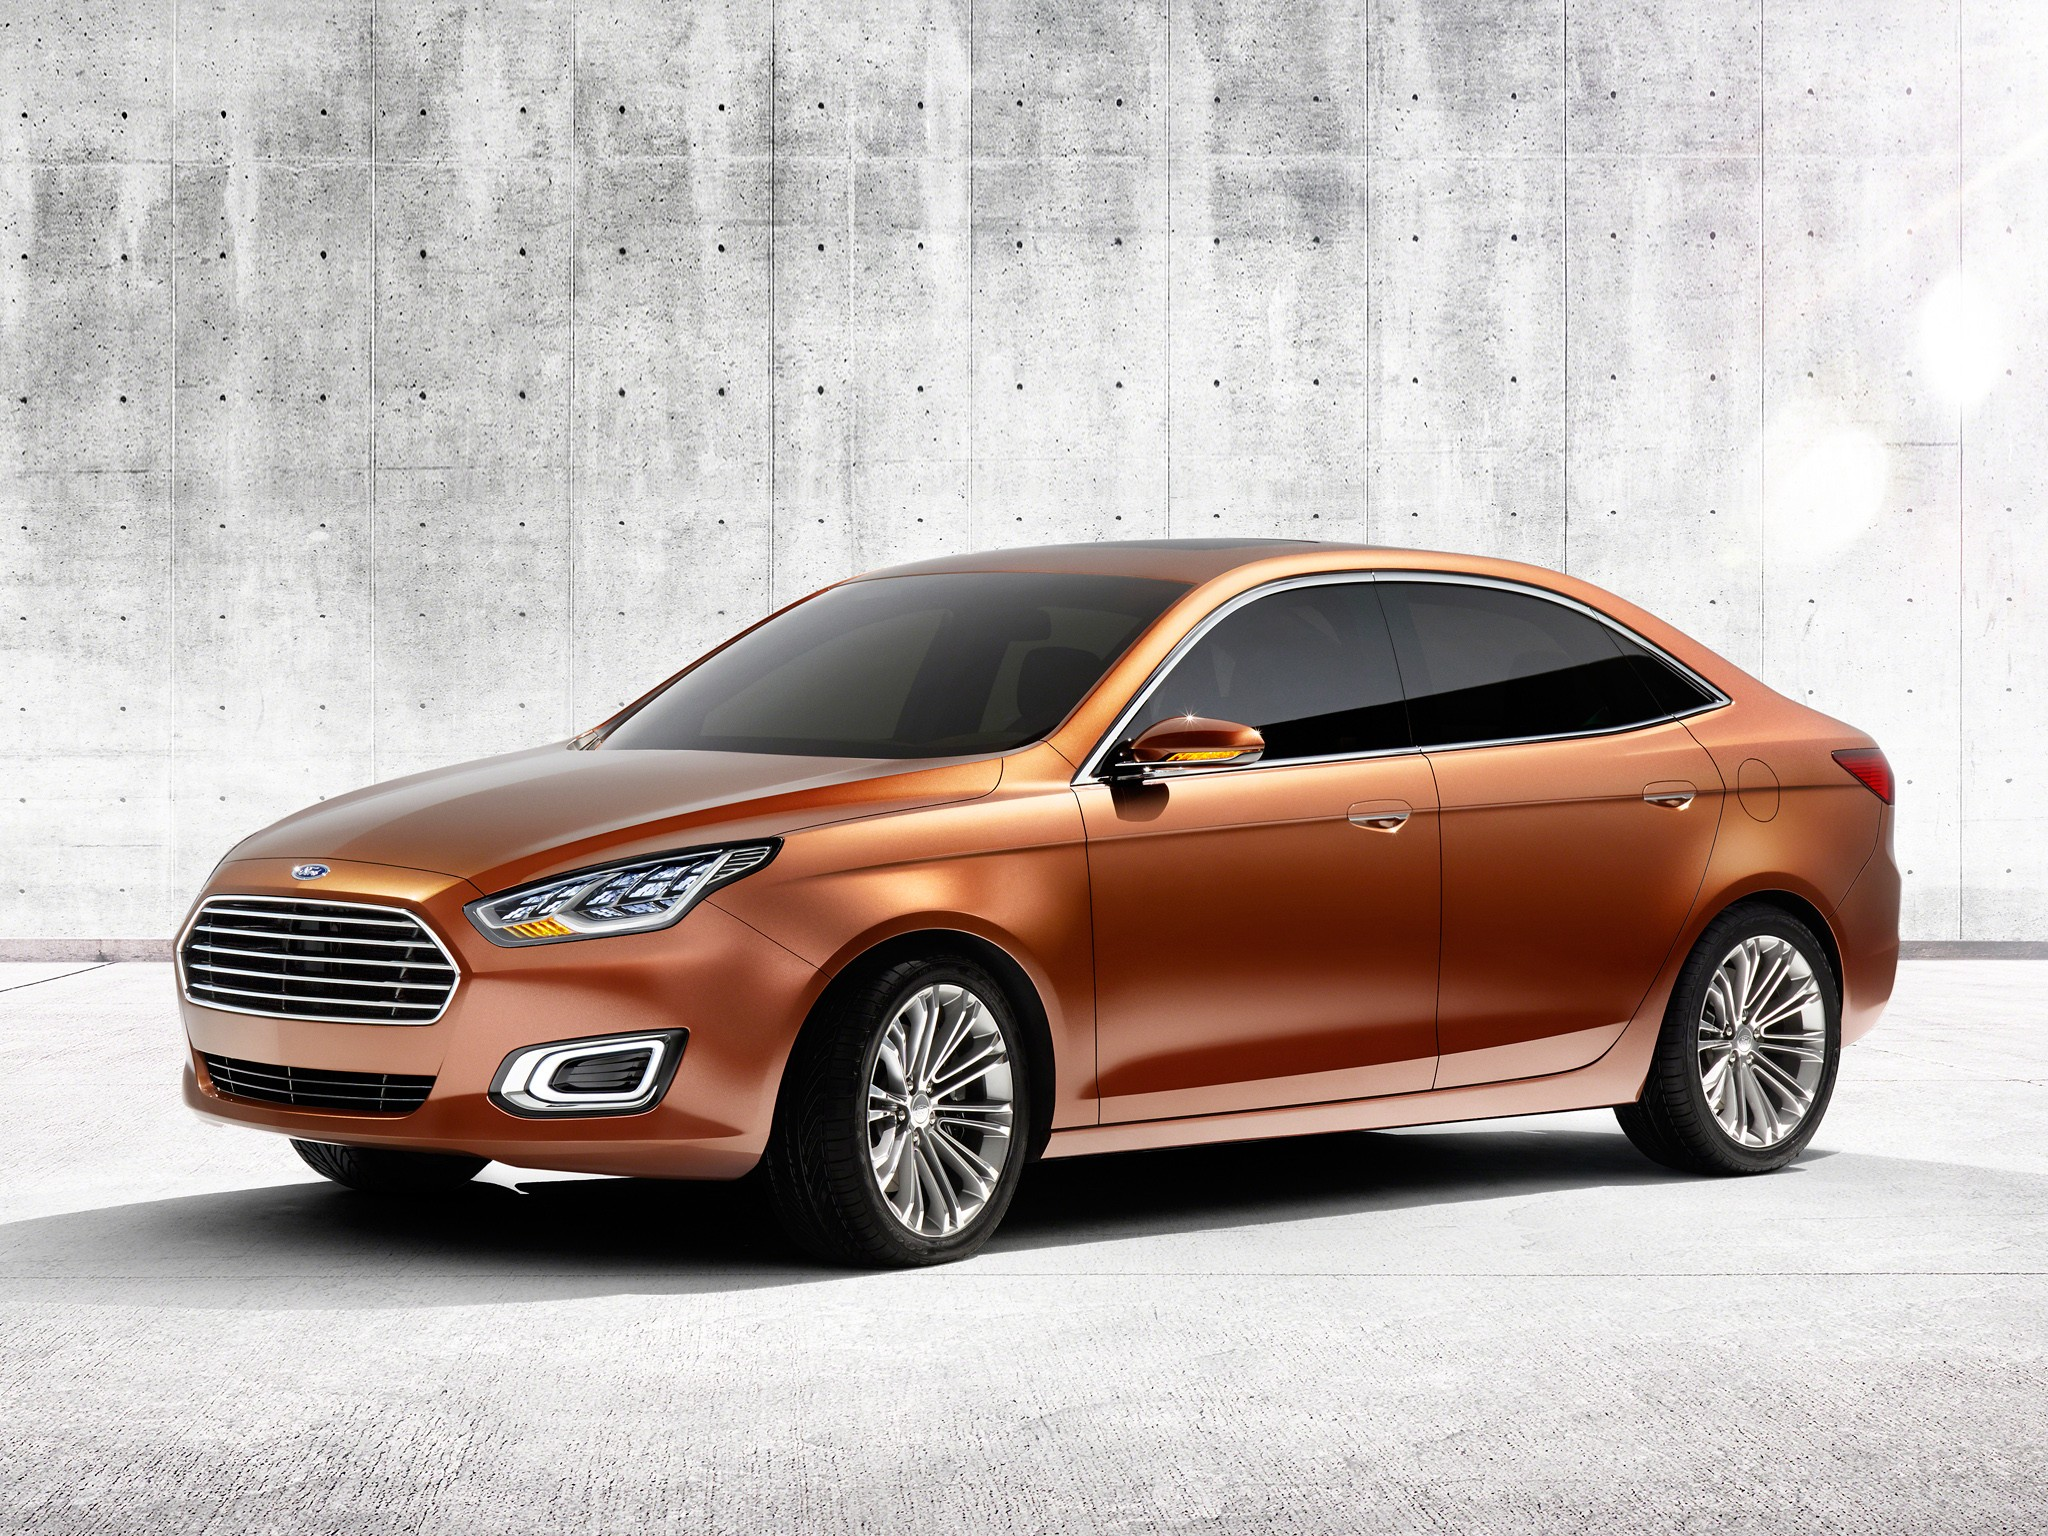 2015 ford escort boosts china sales almost 20 in january autoevolution. Black Bedroom Furniture Sets. Home Design Ideas